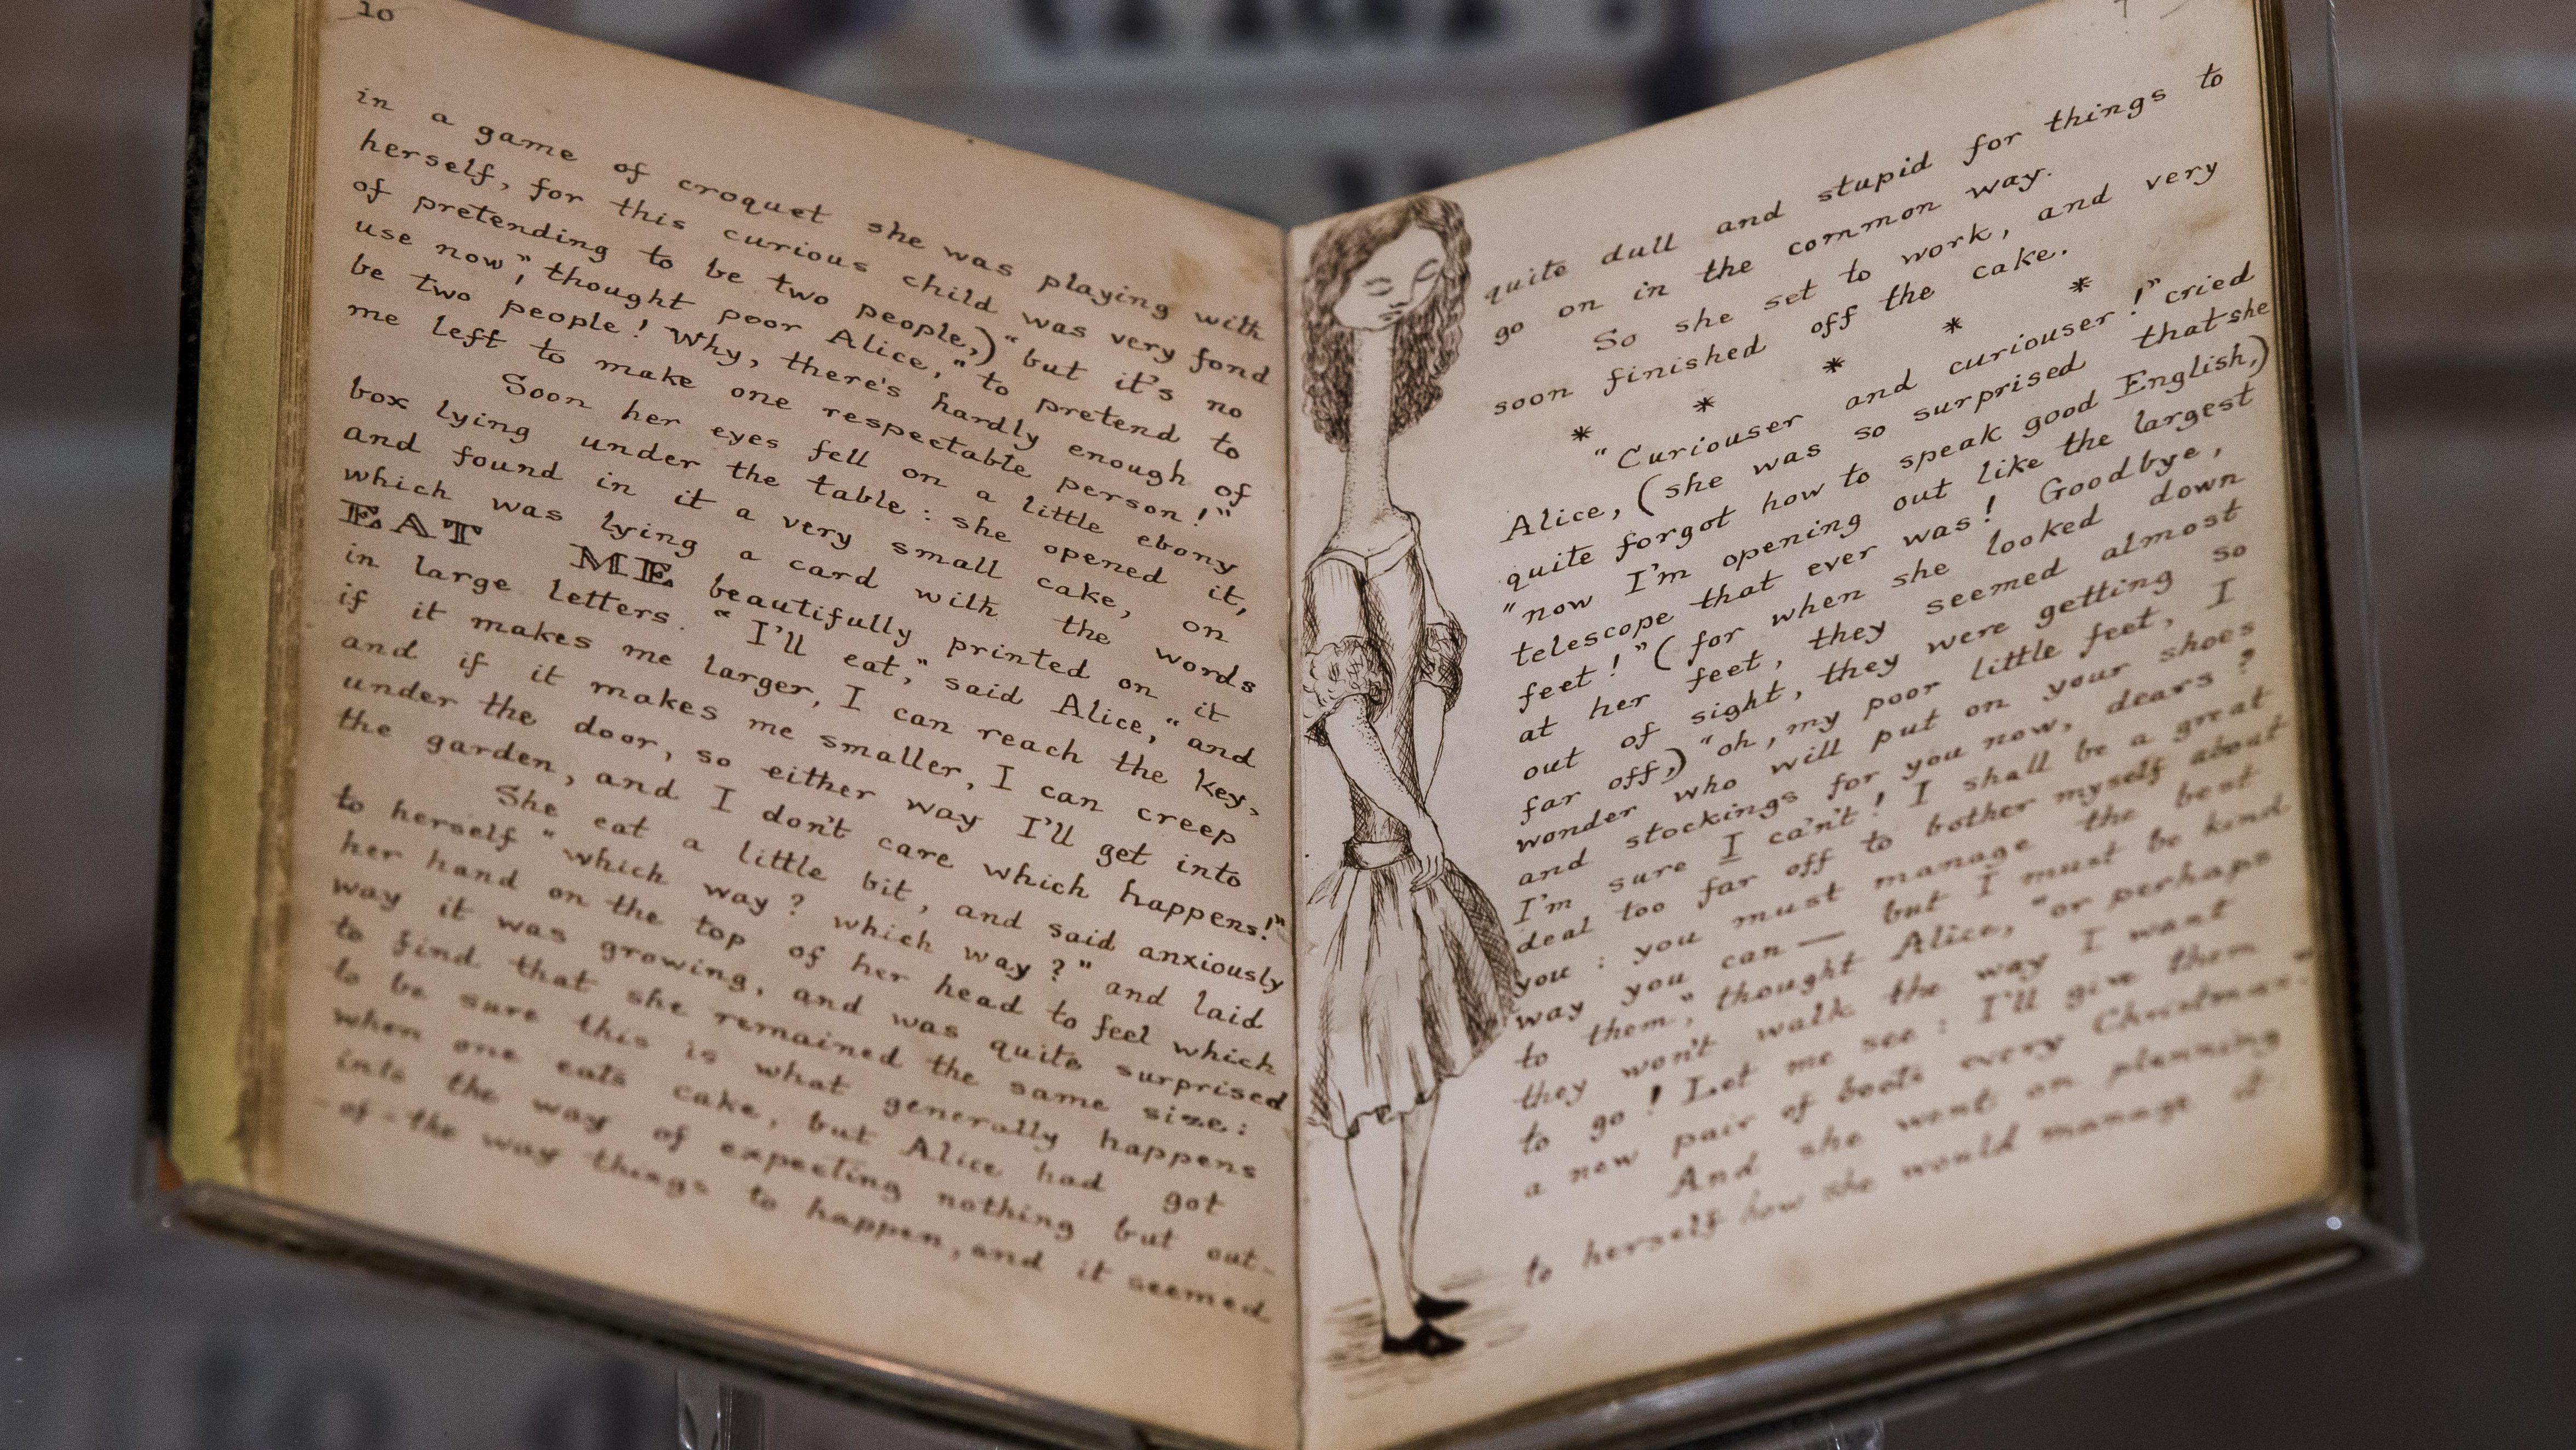 The illustrated original manuscript for Lewis Carroll's Alice's Adventures in Wonderland is displayed at the Rosenbach of the Free Library of Philadelphia Tuesday, Oct. 13, 2015, in Philadelphia. The manuscript is scheduled to be on display from Wednesday, Oct. 14 to Sunday, Oct. 18 to commemorate the 150th anniversary of the publication of Alice's Adventures in Wonderland. (AP Photo/Matt Rourke)